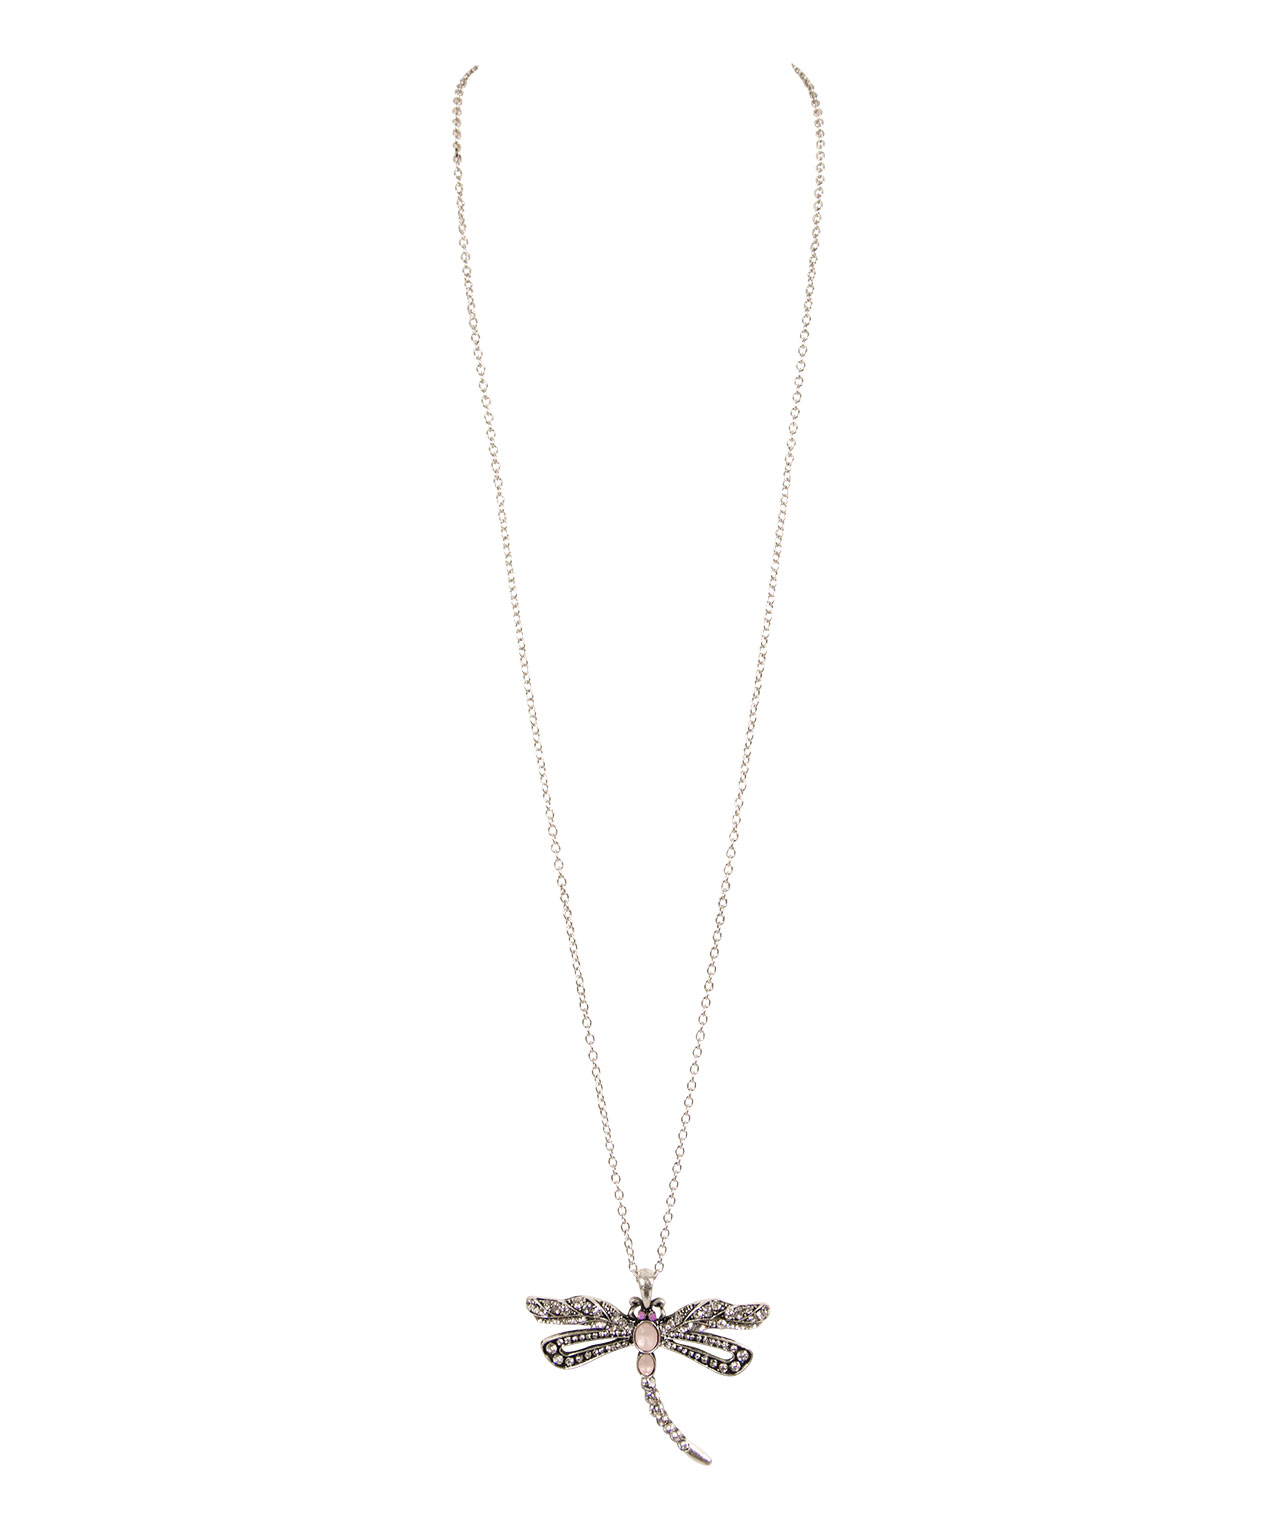 dragonfly rickis pendant silver brushed res peach necklace hi soft